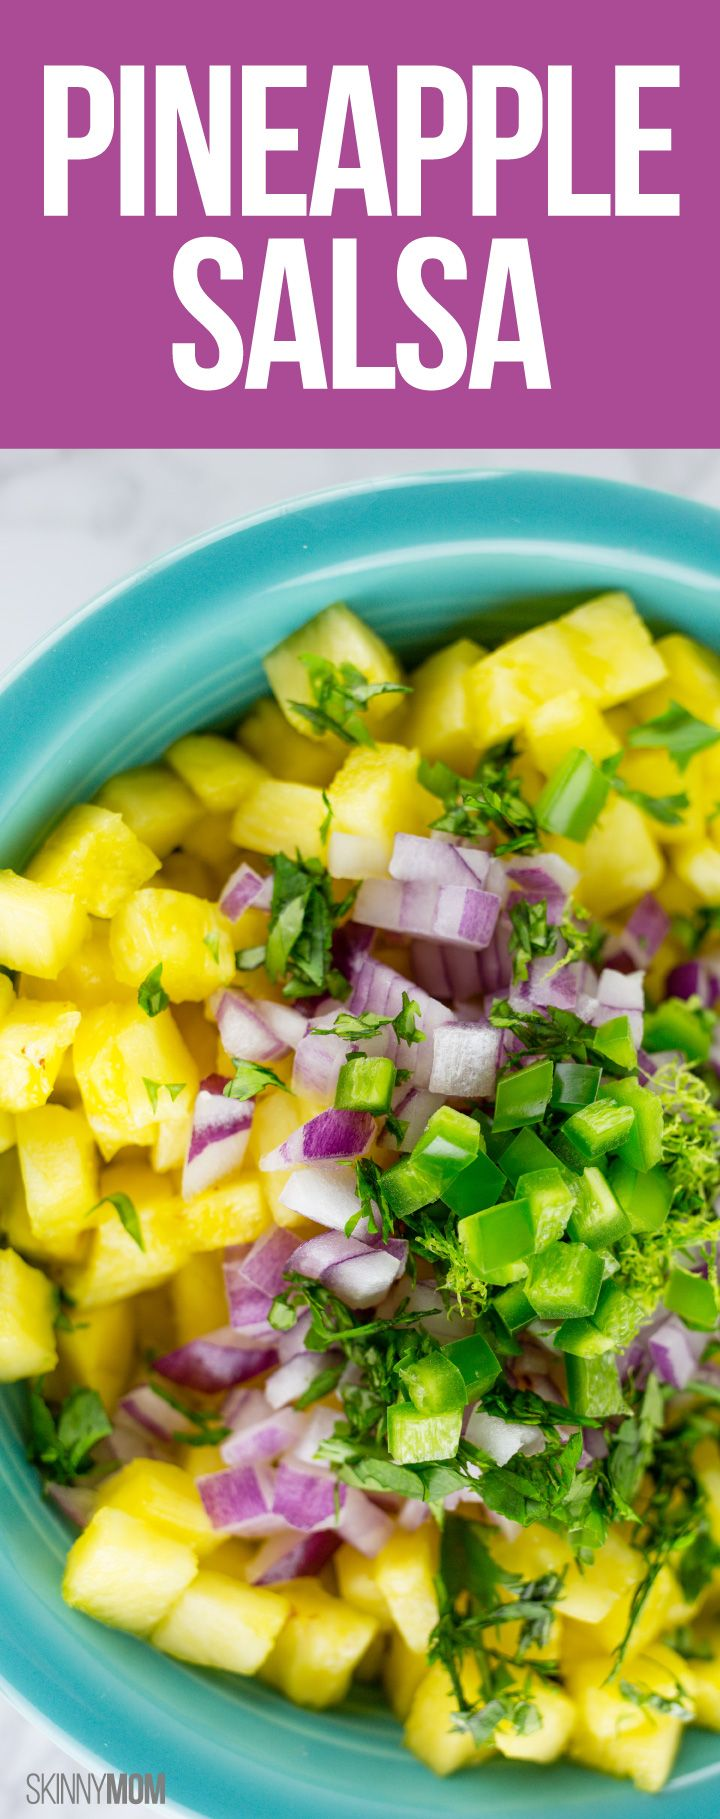 Save this recipe for your Cinco de Mayo fun!